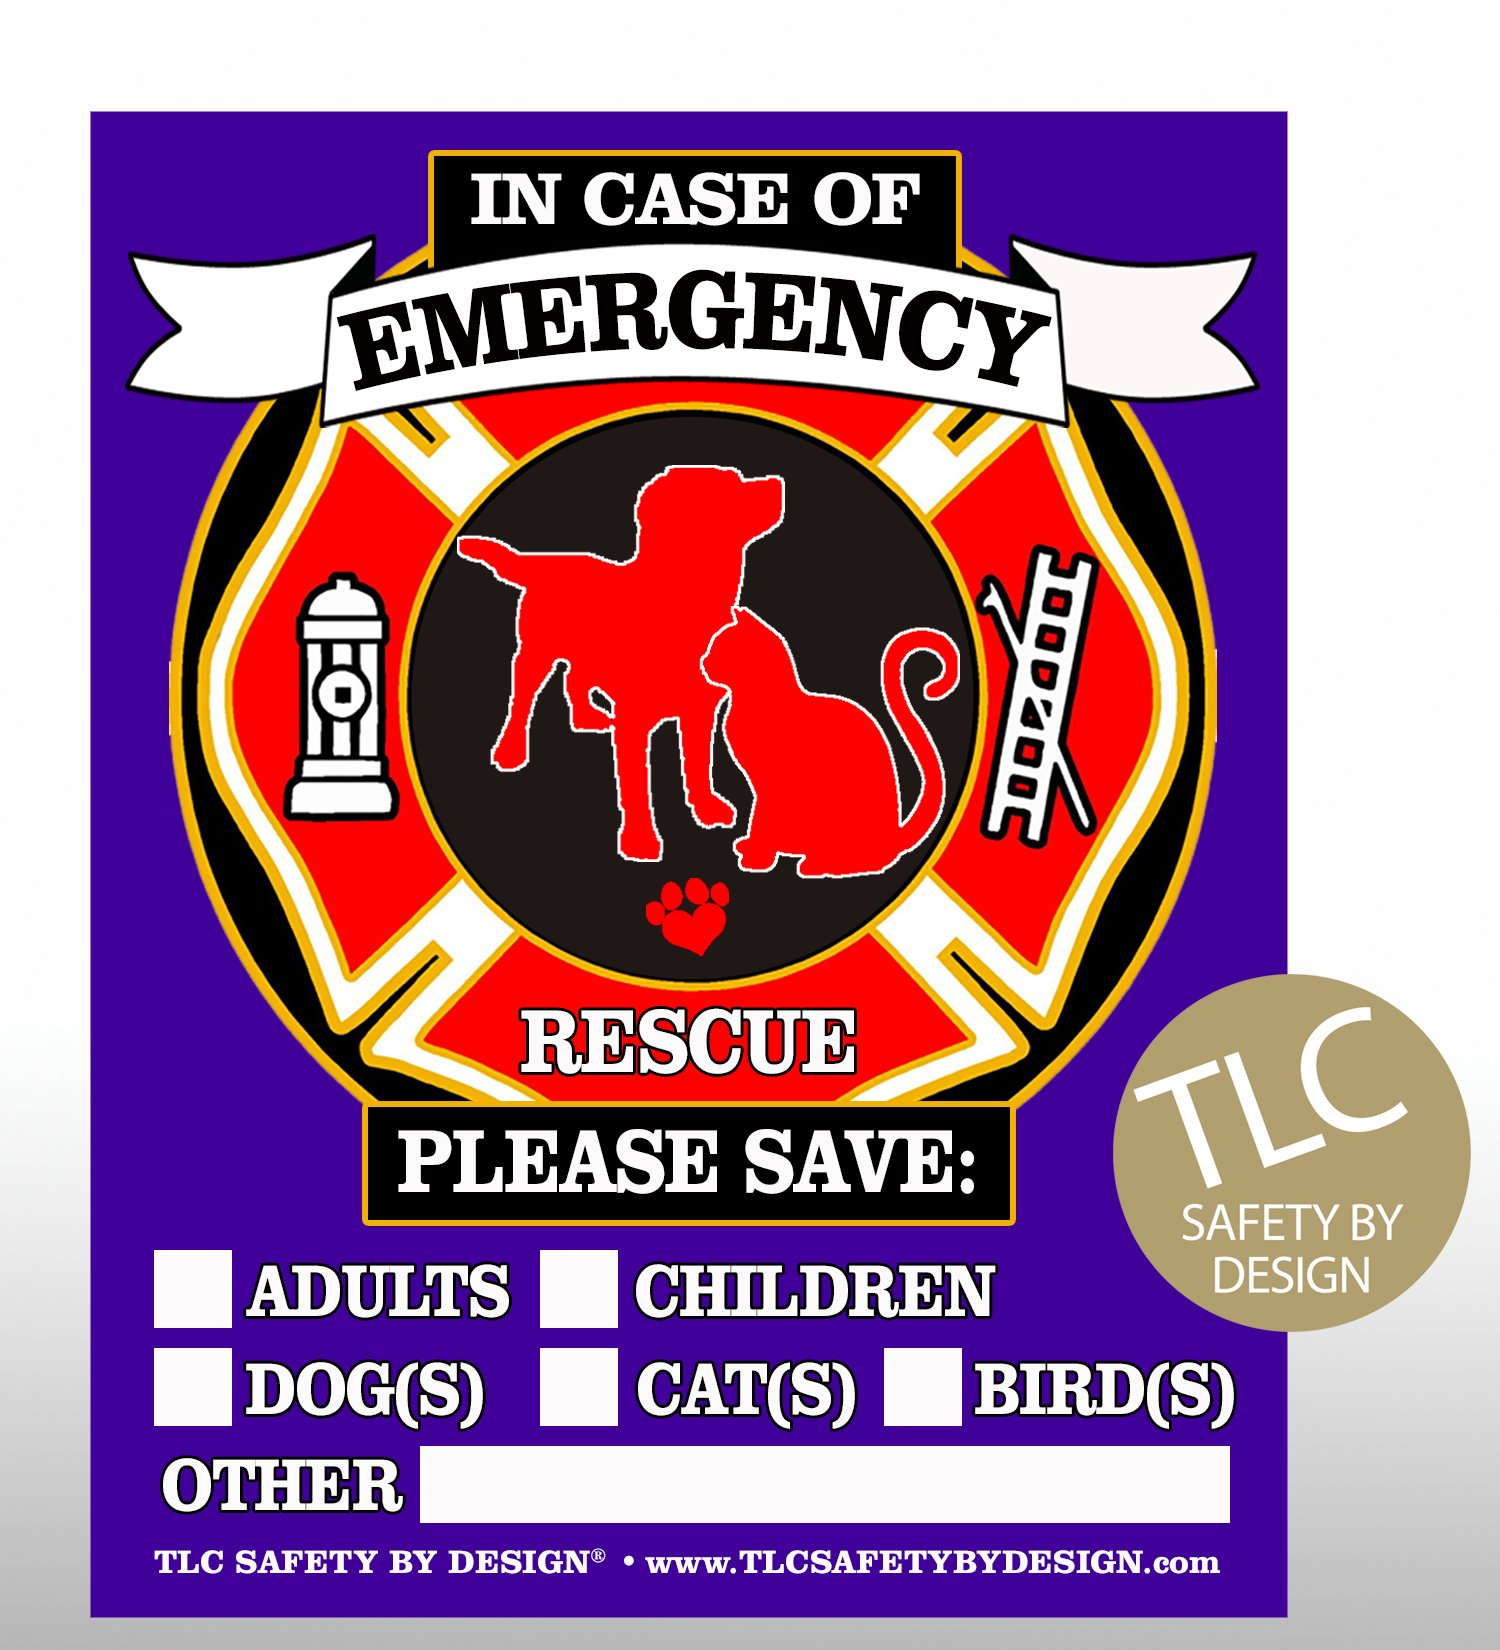 Tlc safety by design pet fire rescue top rated trademarked safety alert emergency pet dog cat